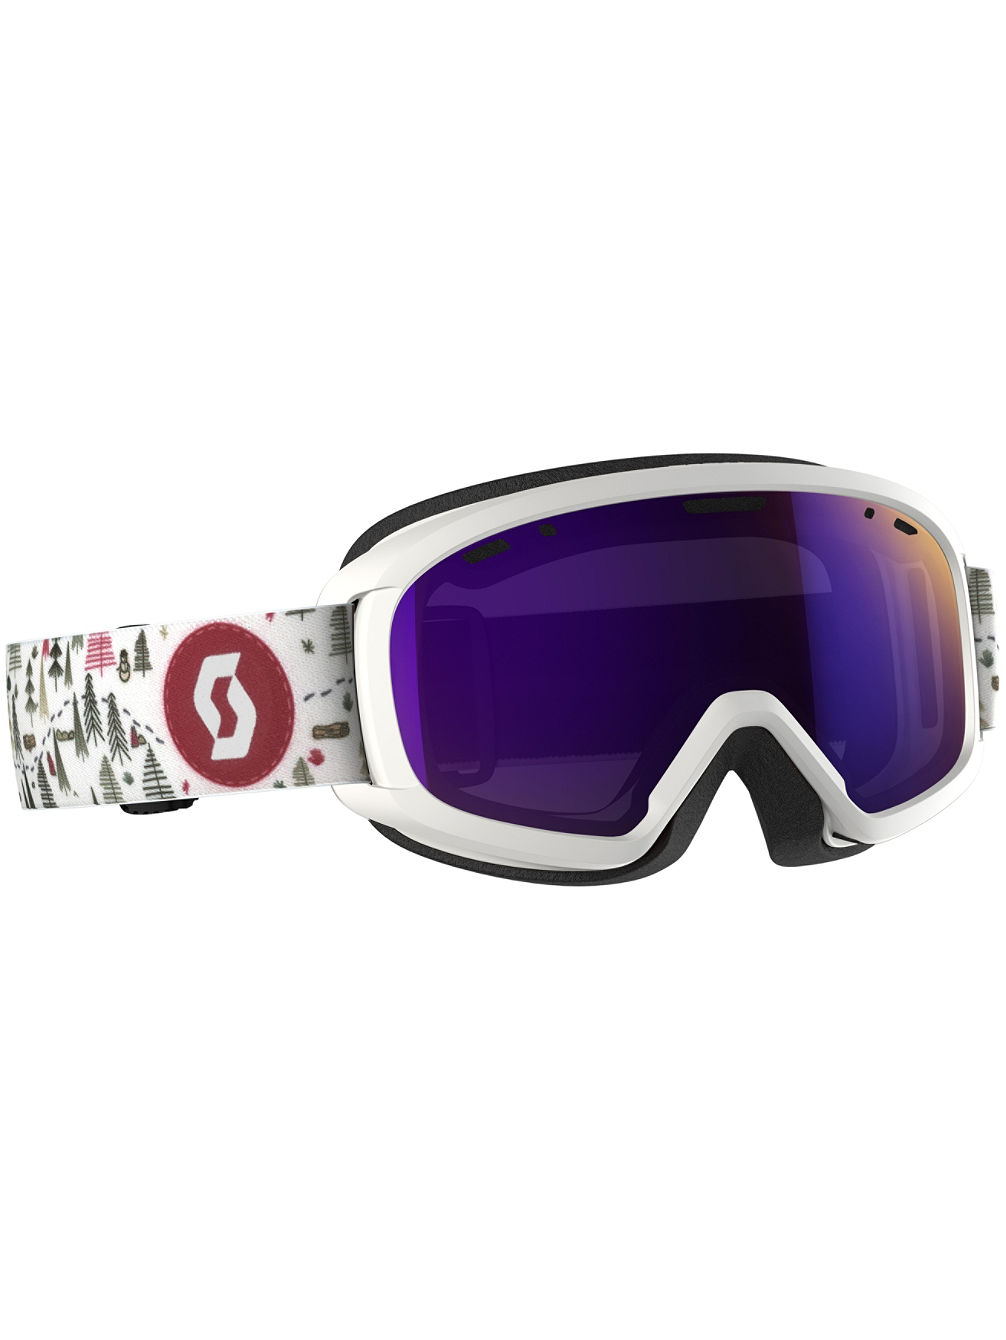 Witty White/Pink Youth Goggle